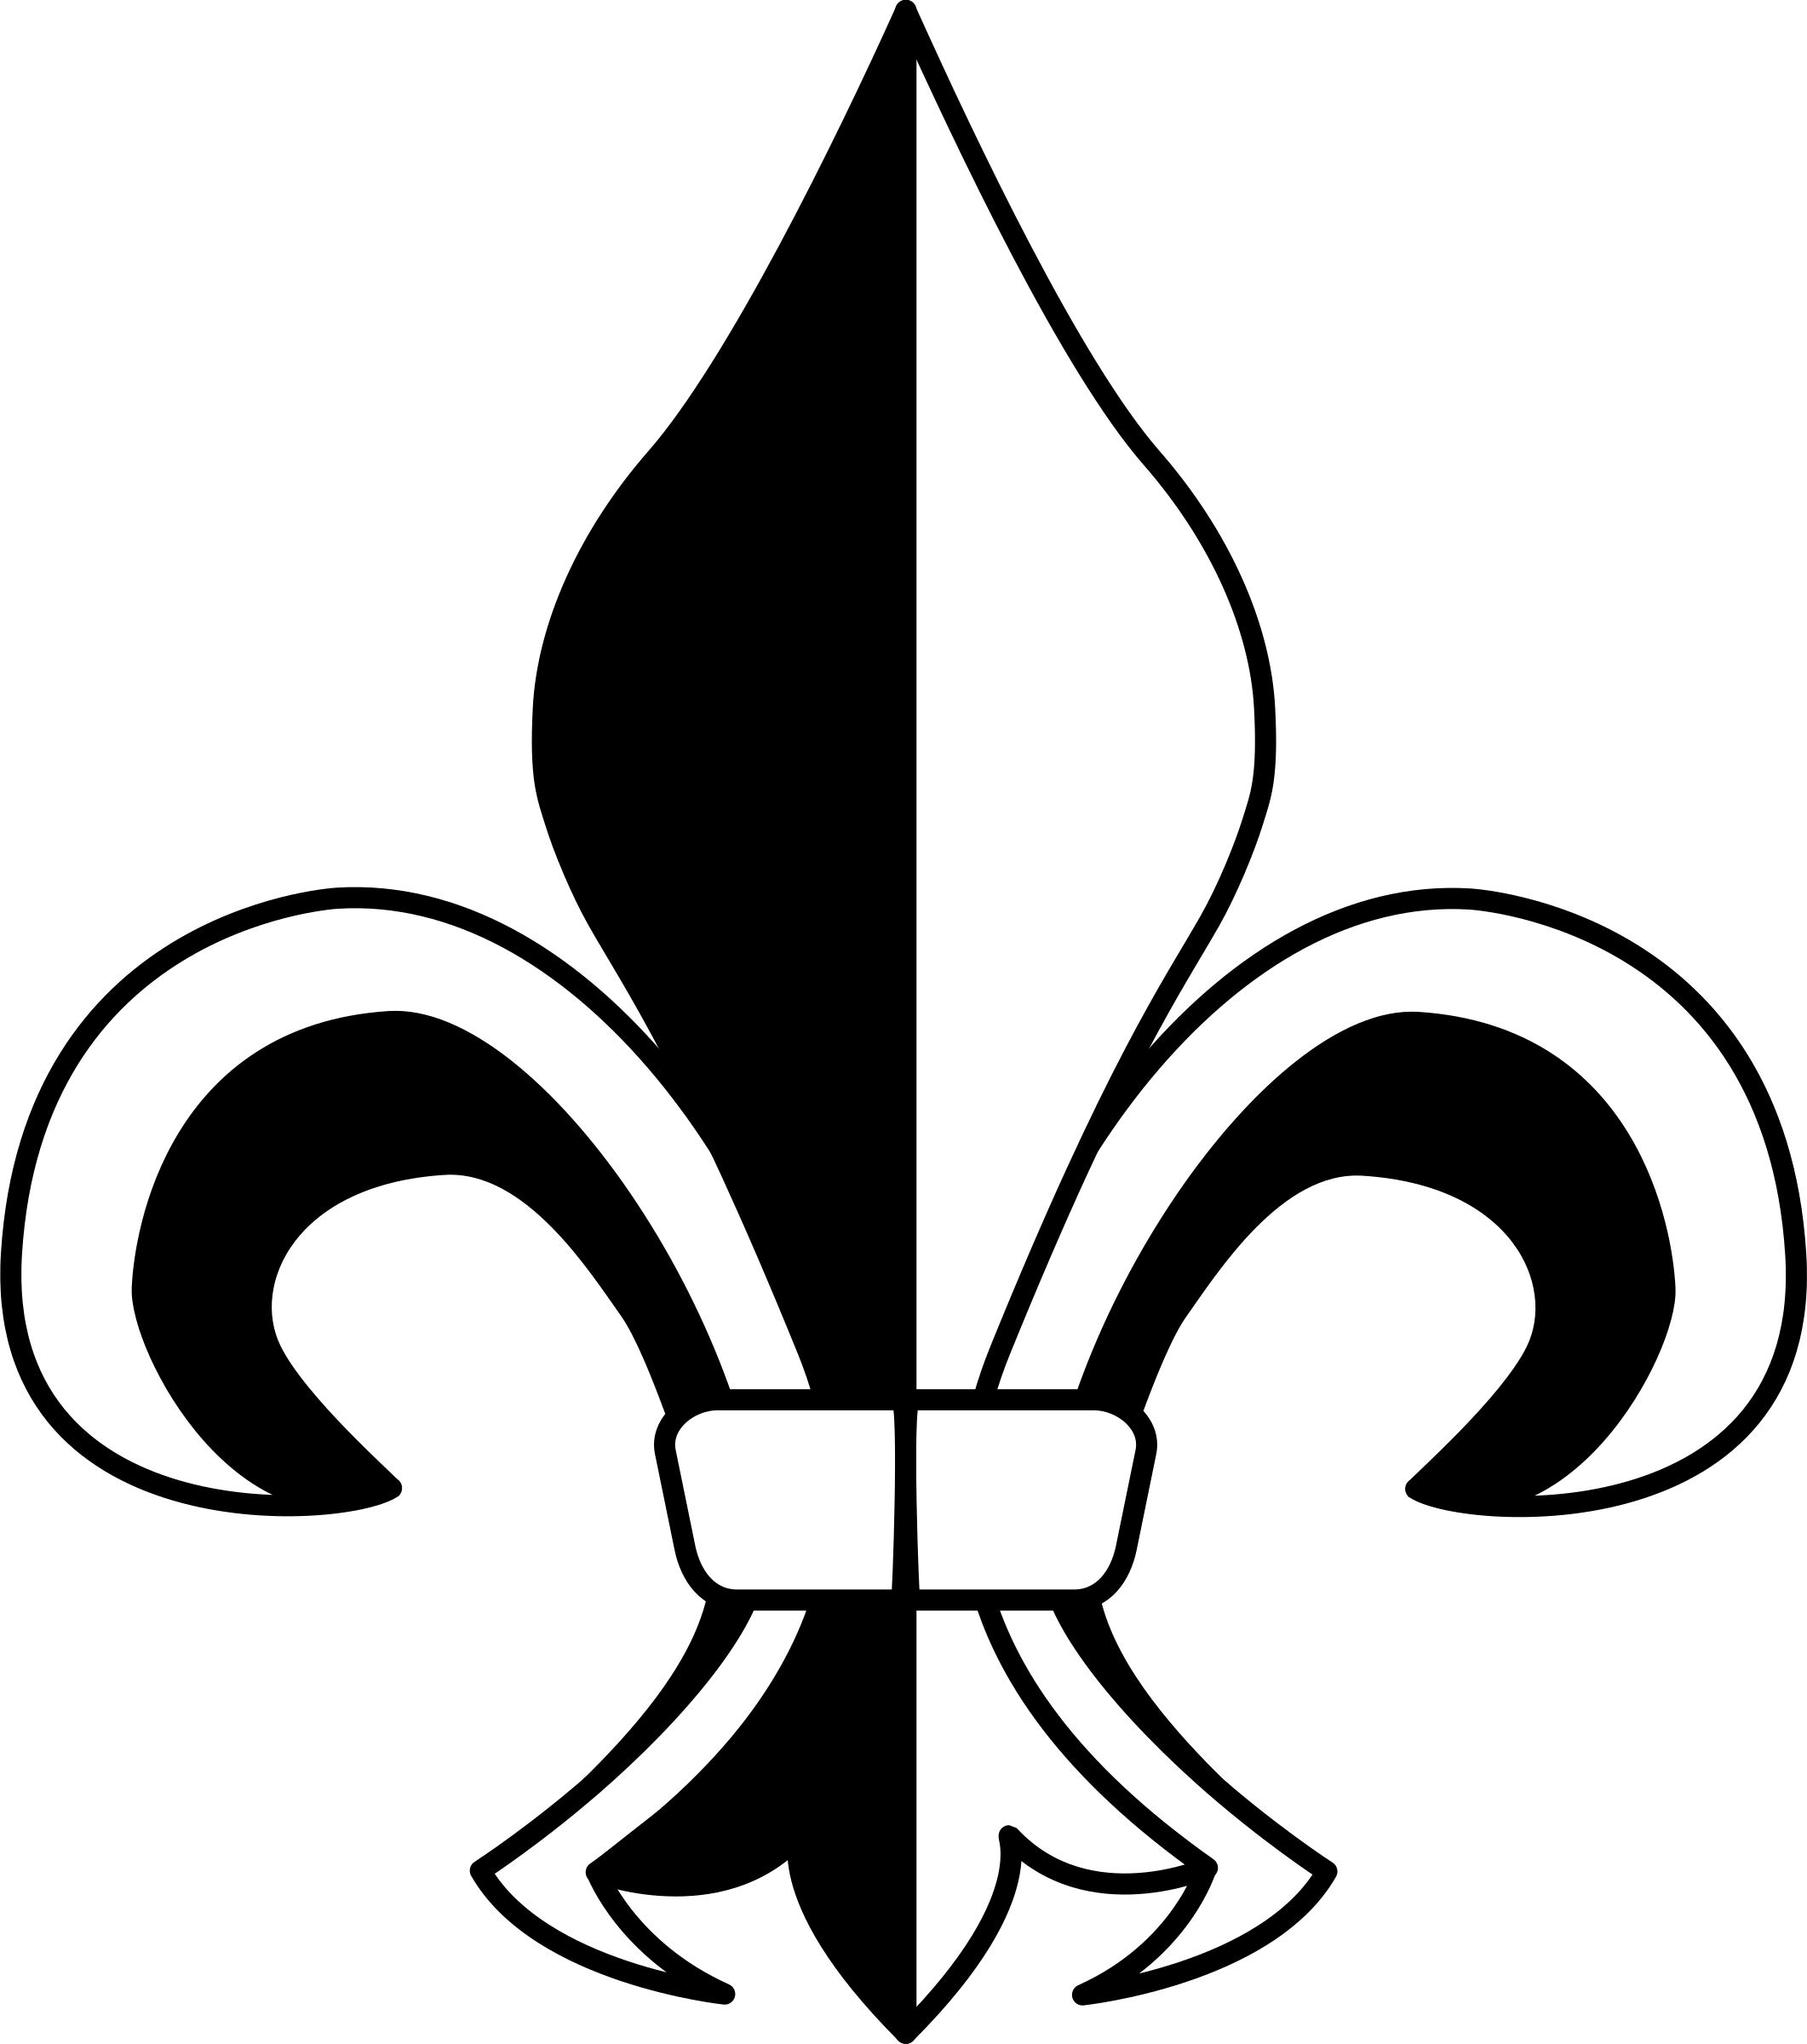 clipart fleur de lis. Black Bedroom Furniture Sets. Home Design Ideas